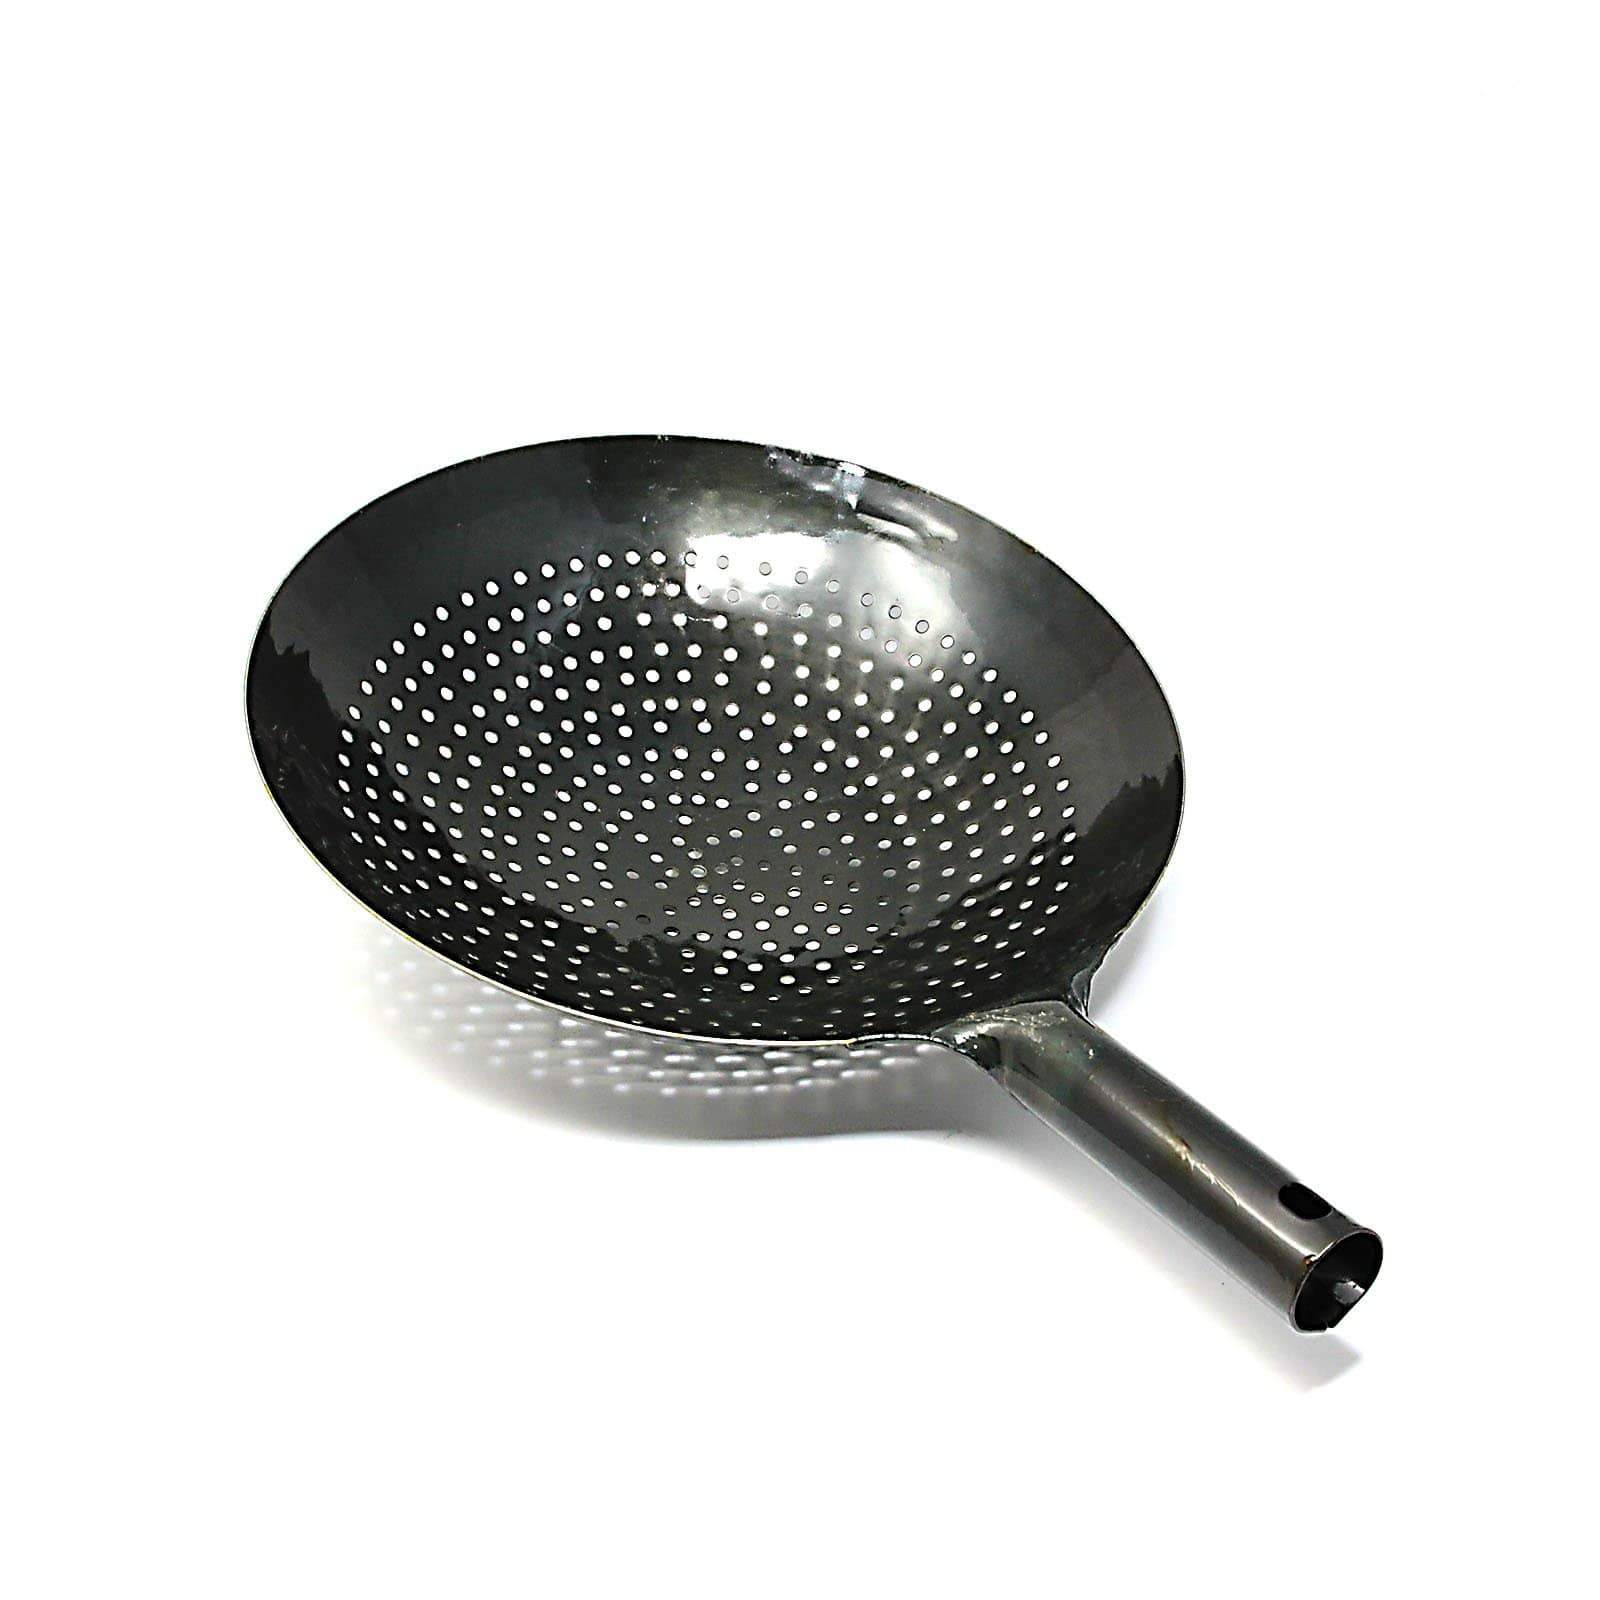 Yamada Hammered Iron Perforated Wok Strainer Wok Strainers